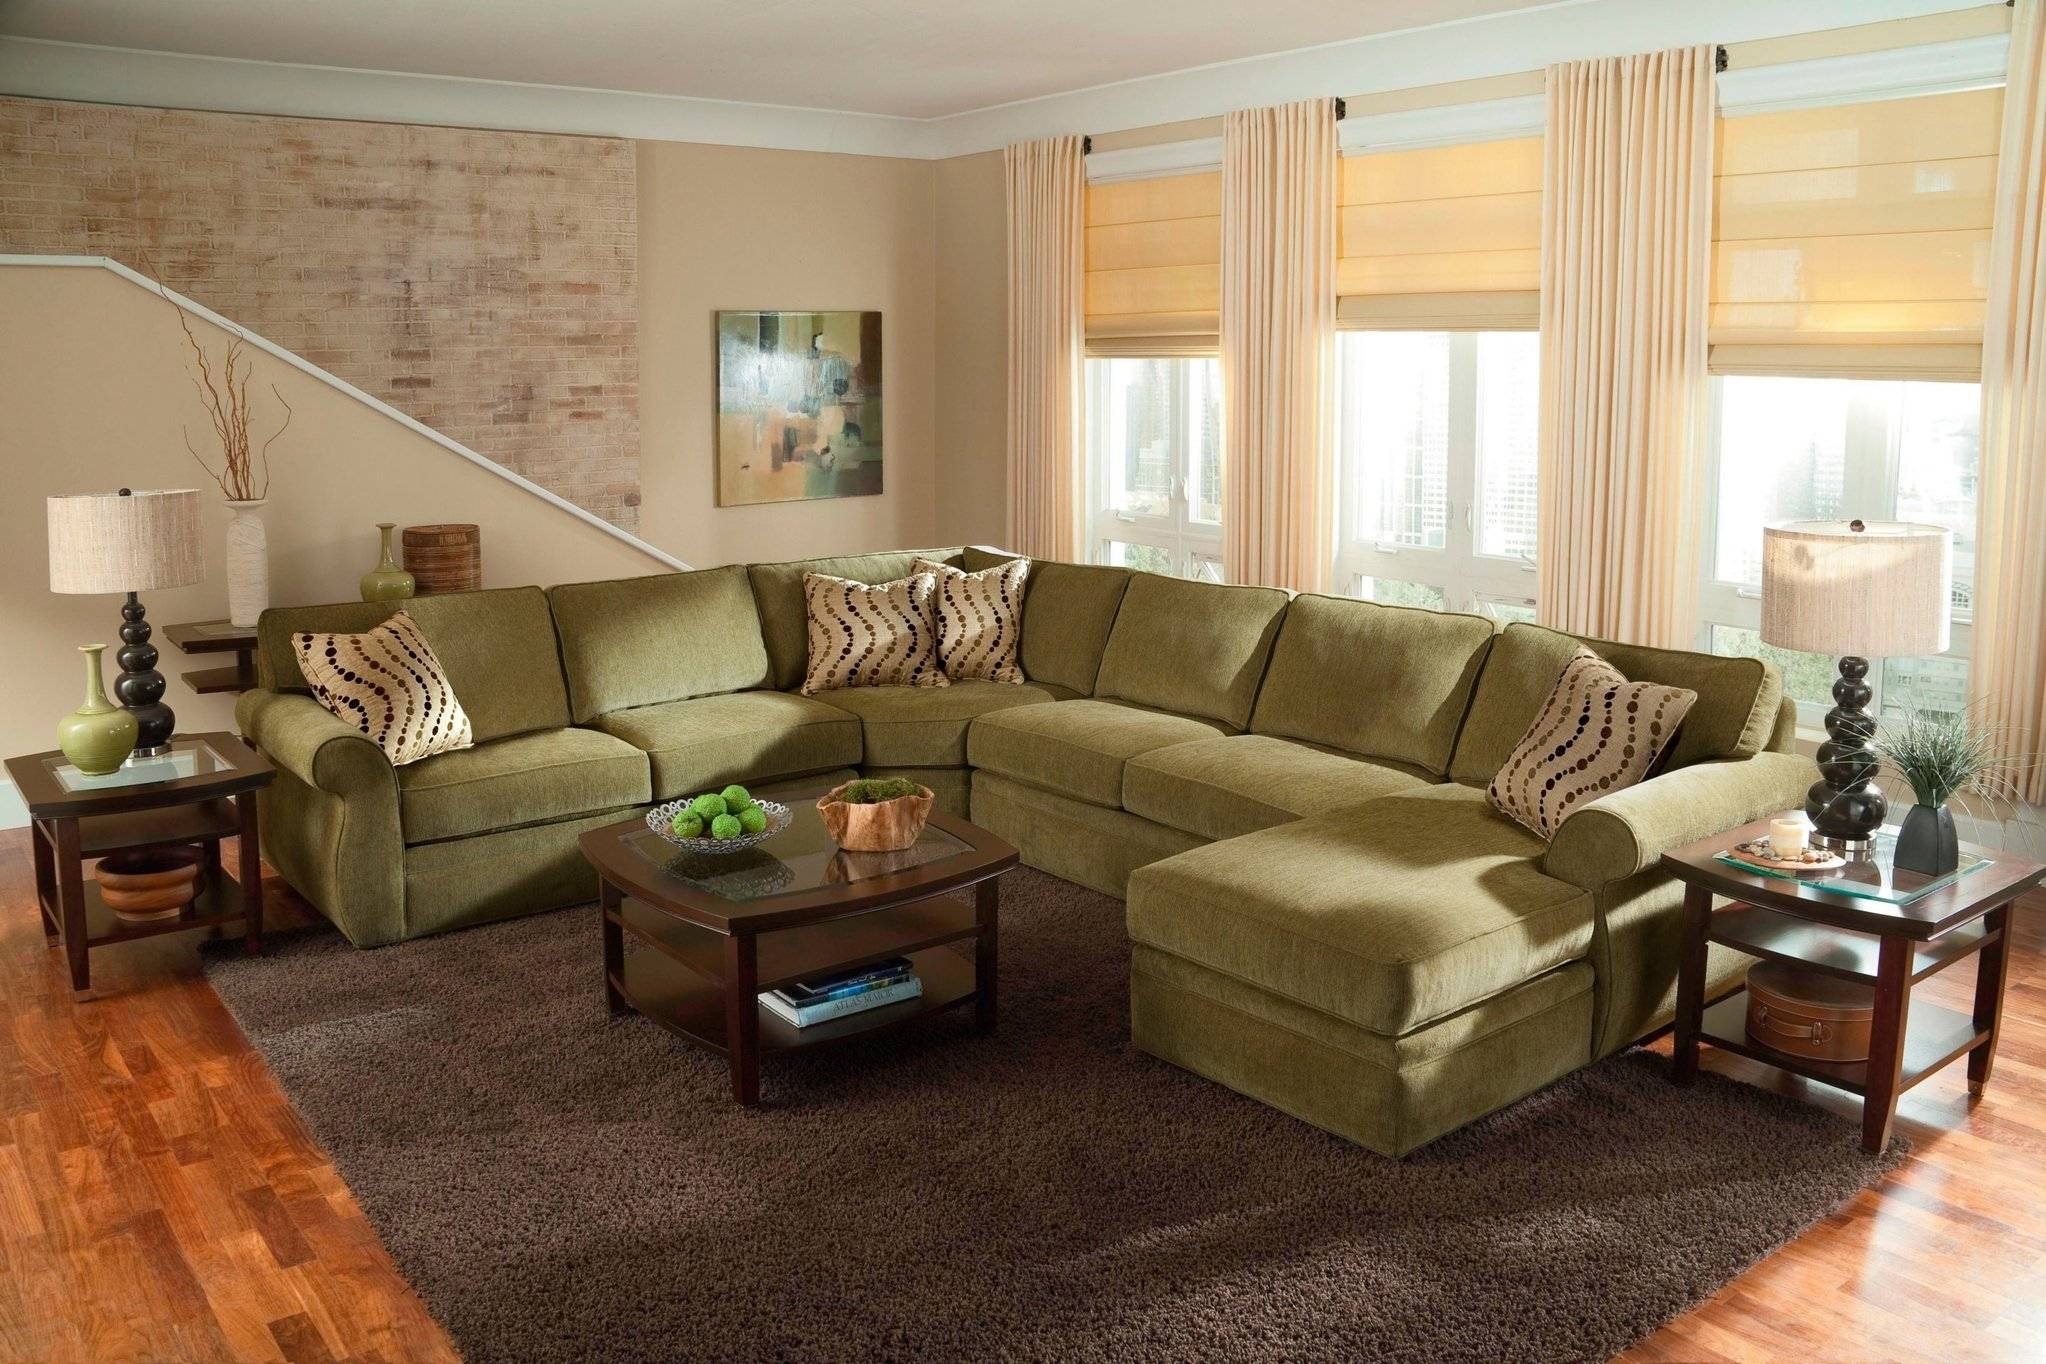 Cool Huge Sectional Sofas 69 On Bentley Sectional Leather Sofa within Bentley Sectional Leather Sofa (Image 16 of 30)